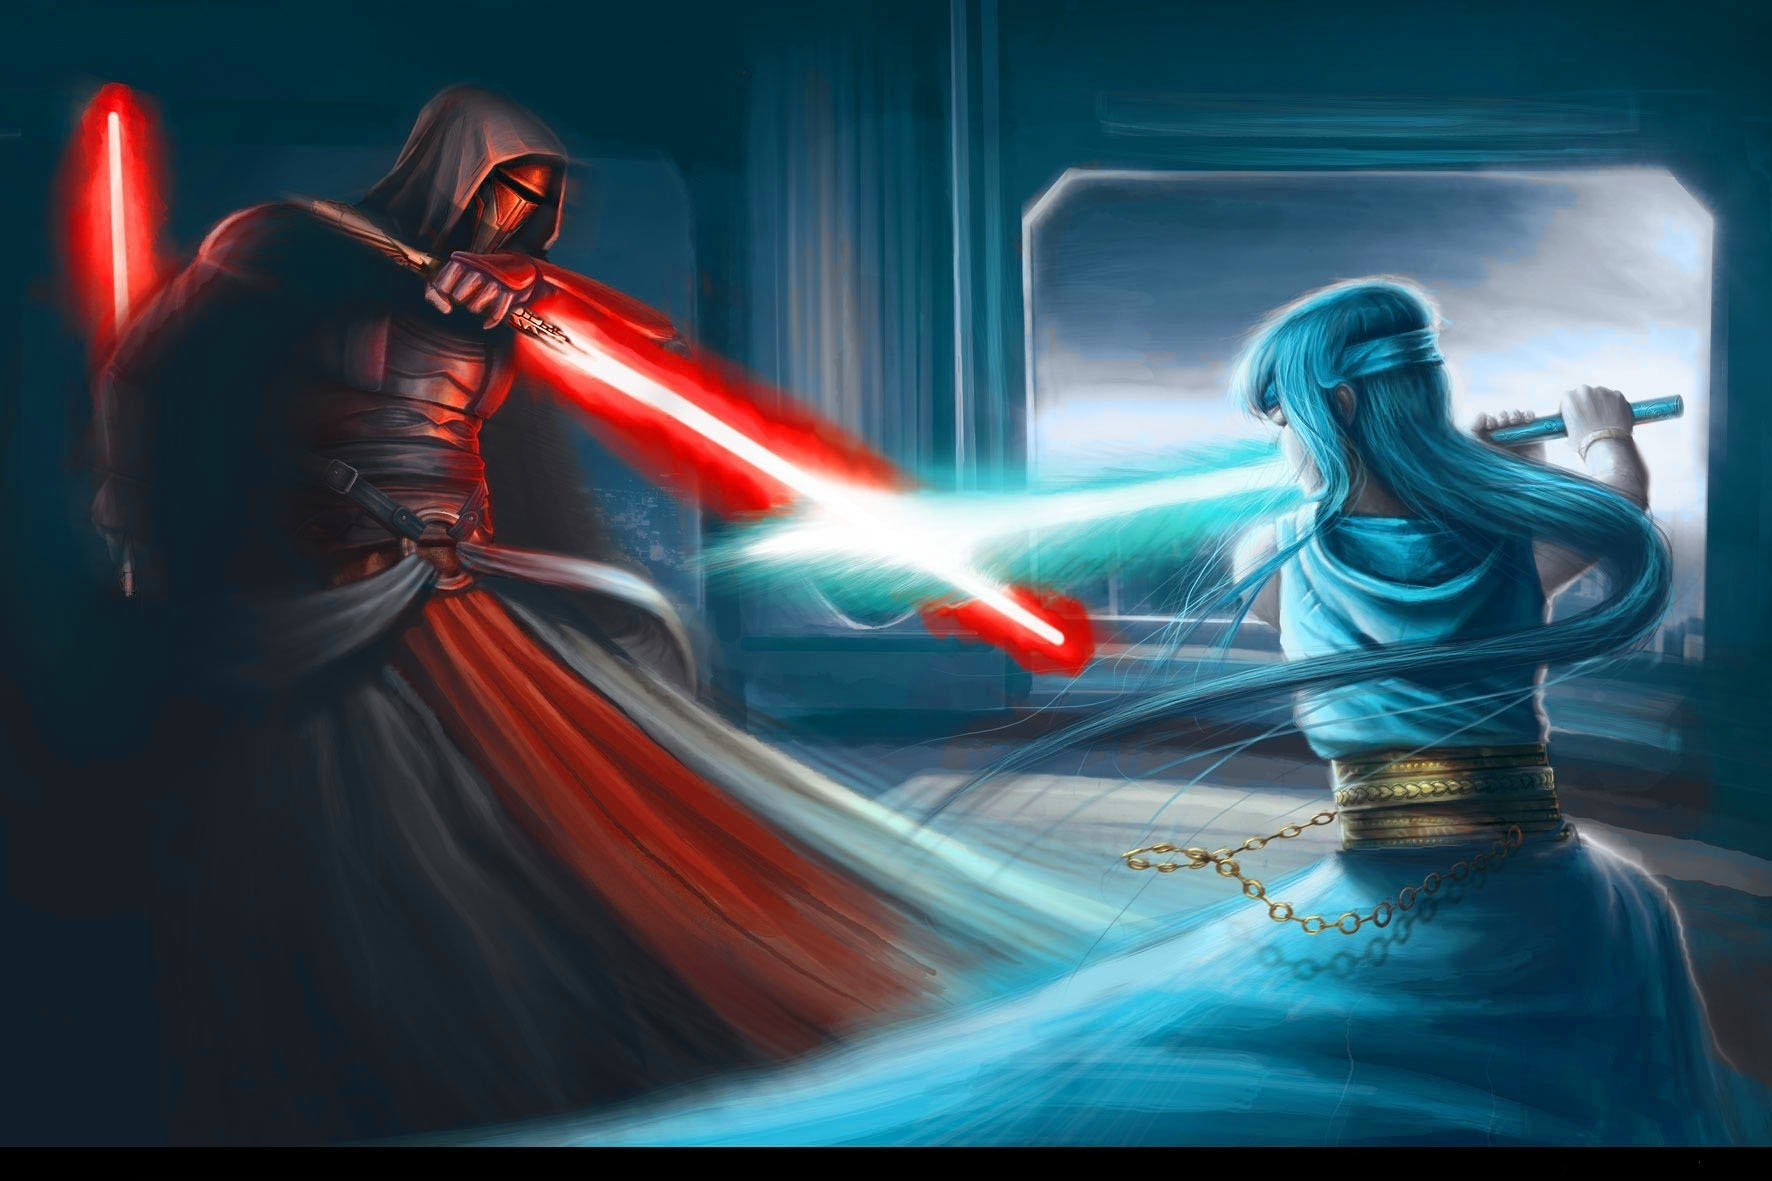 star wars: knights of the old republic ii fond d'écran and arrière